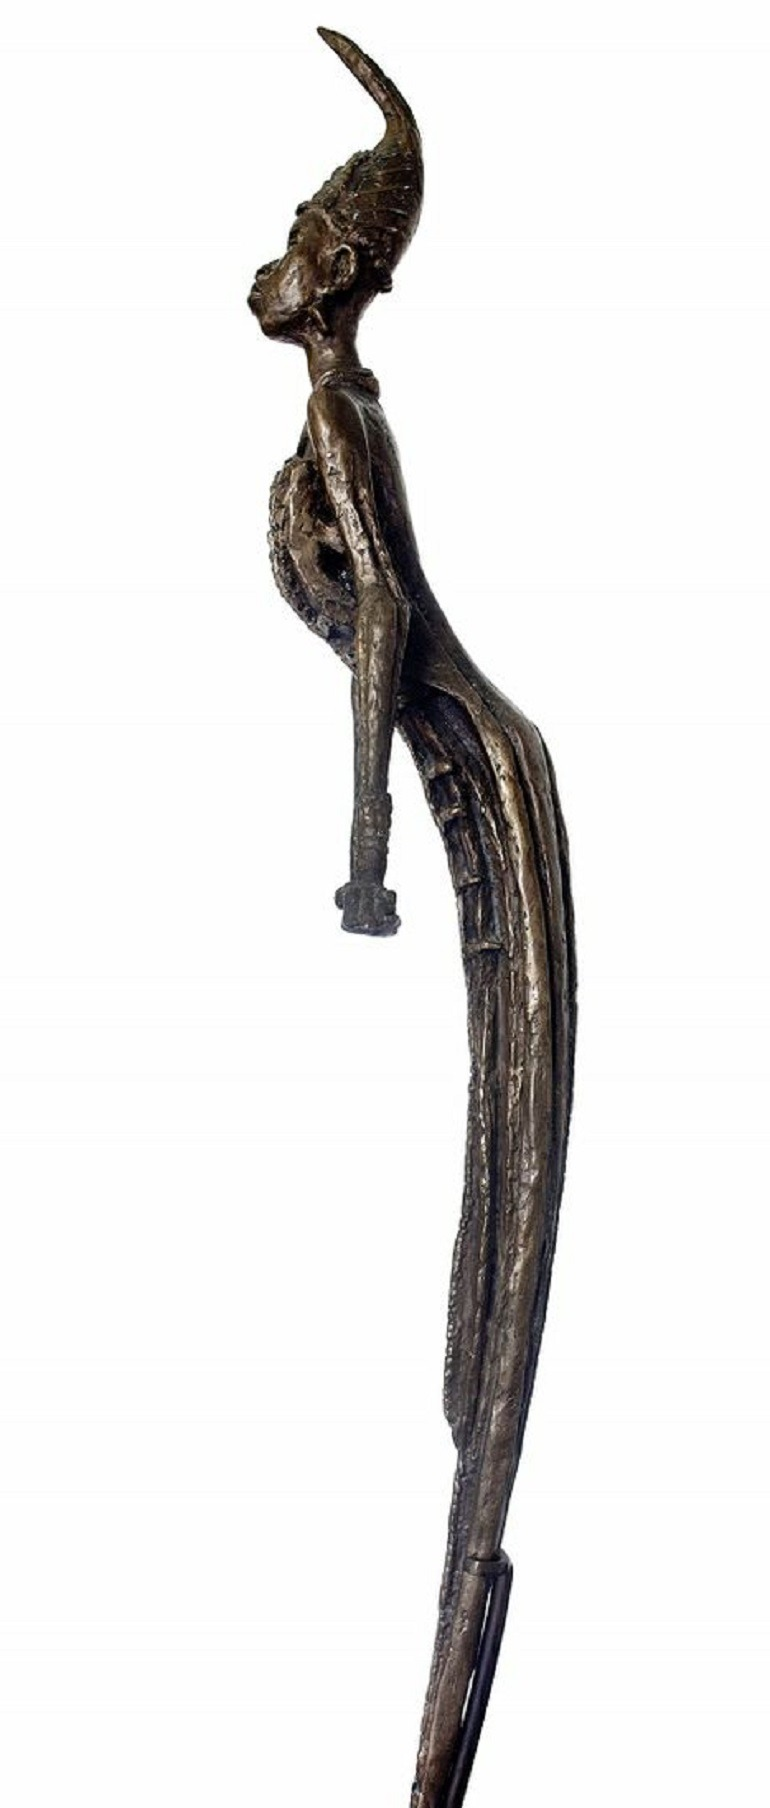 Image: Ben Enwonwu (Nigerian, 1917-1994), 'Anyanwu' sculpture make record art auction price at Bonhams